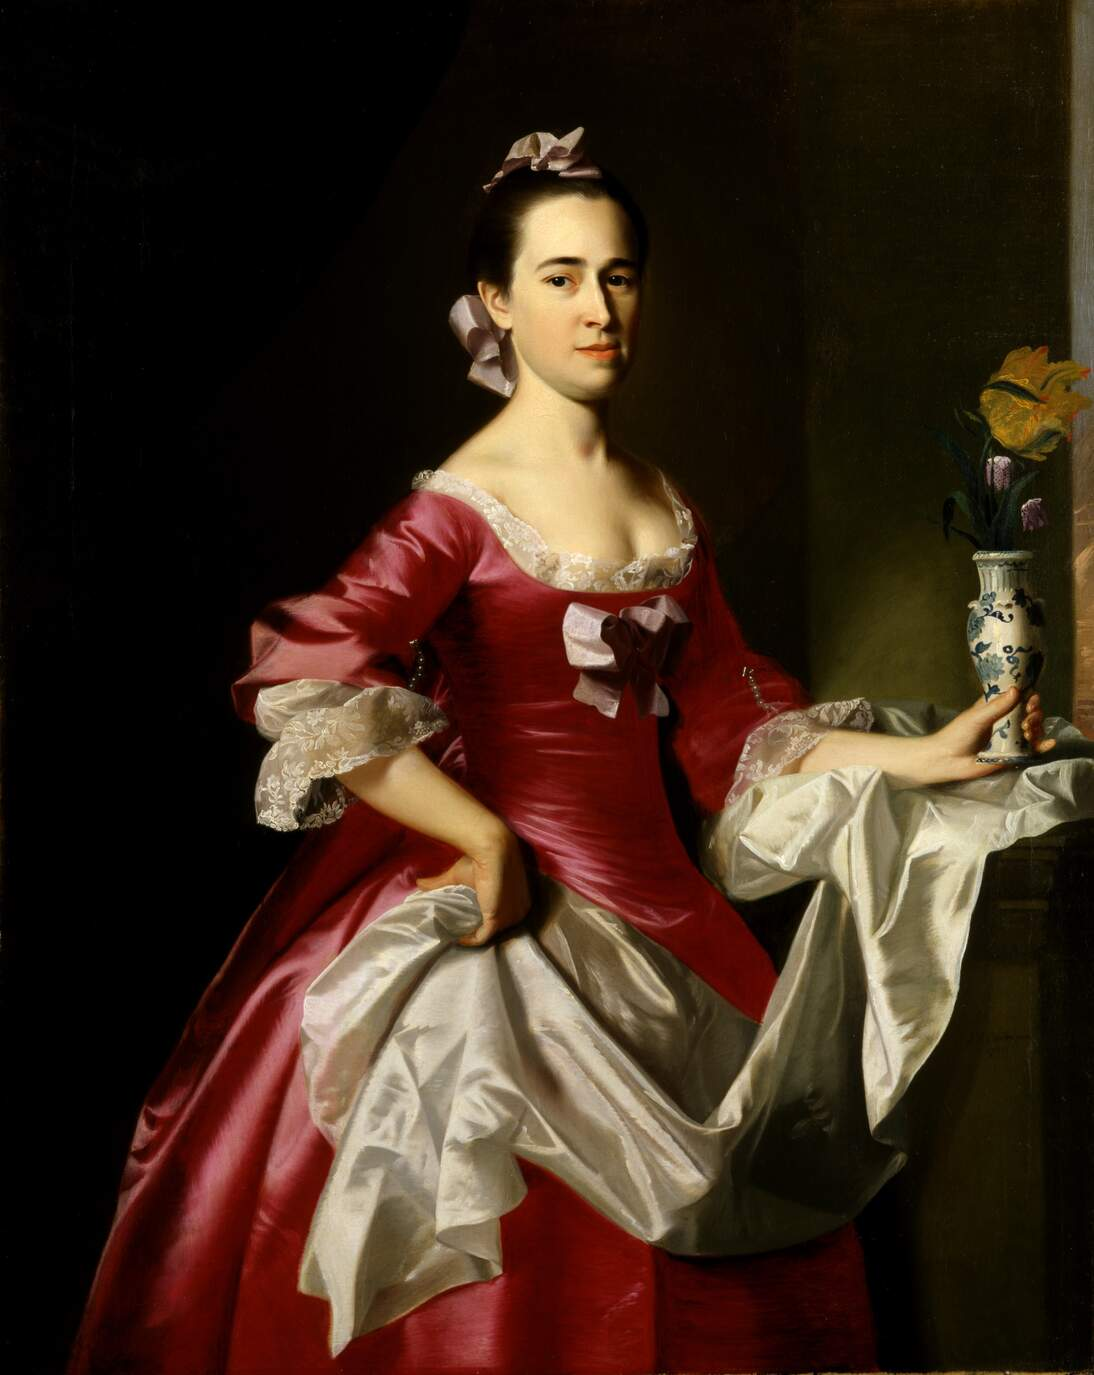 "John Singleton Copley, ""Mrs. George Watson,"" 1765. Oil on canvas, 49 7/8 x 40 in. (126.7 x 101.6 cm). Smithsonian American Art Museum, Partial gift of Henderson Inches, Jr., in honor of his parents, Mr. and Mrs. Inches, and museum purchase made possible in part by Mr. and Mrs. R. Crosby Kemper through the Crosby Kemper Foundation; the American Art Forum; and the Luisita L. and Franz H. Denghausen Endowment, 1991.189. Image courtesy of Smithsonian American Art Museum"